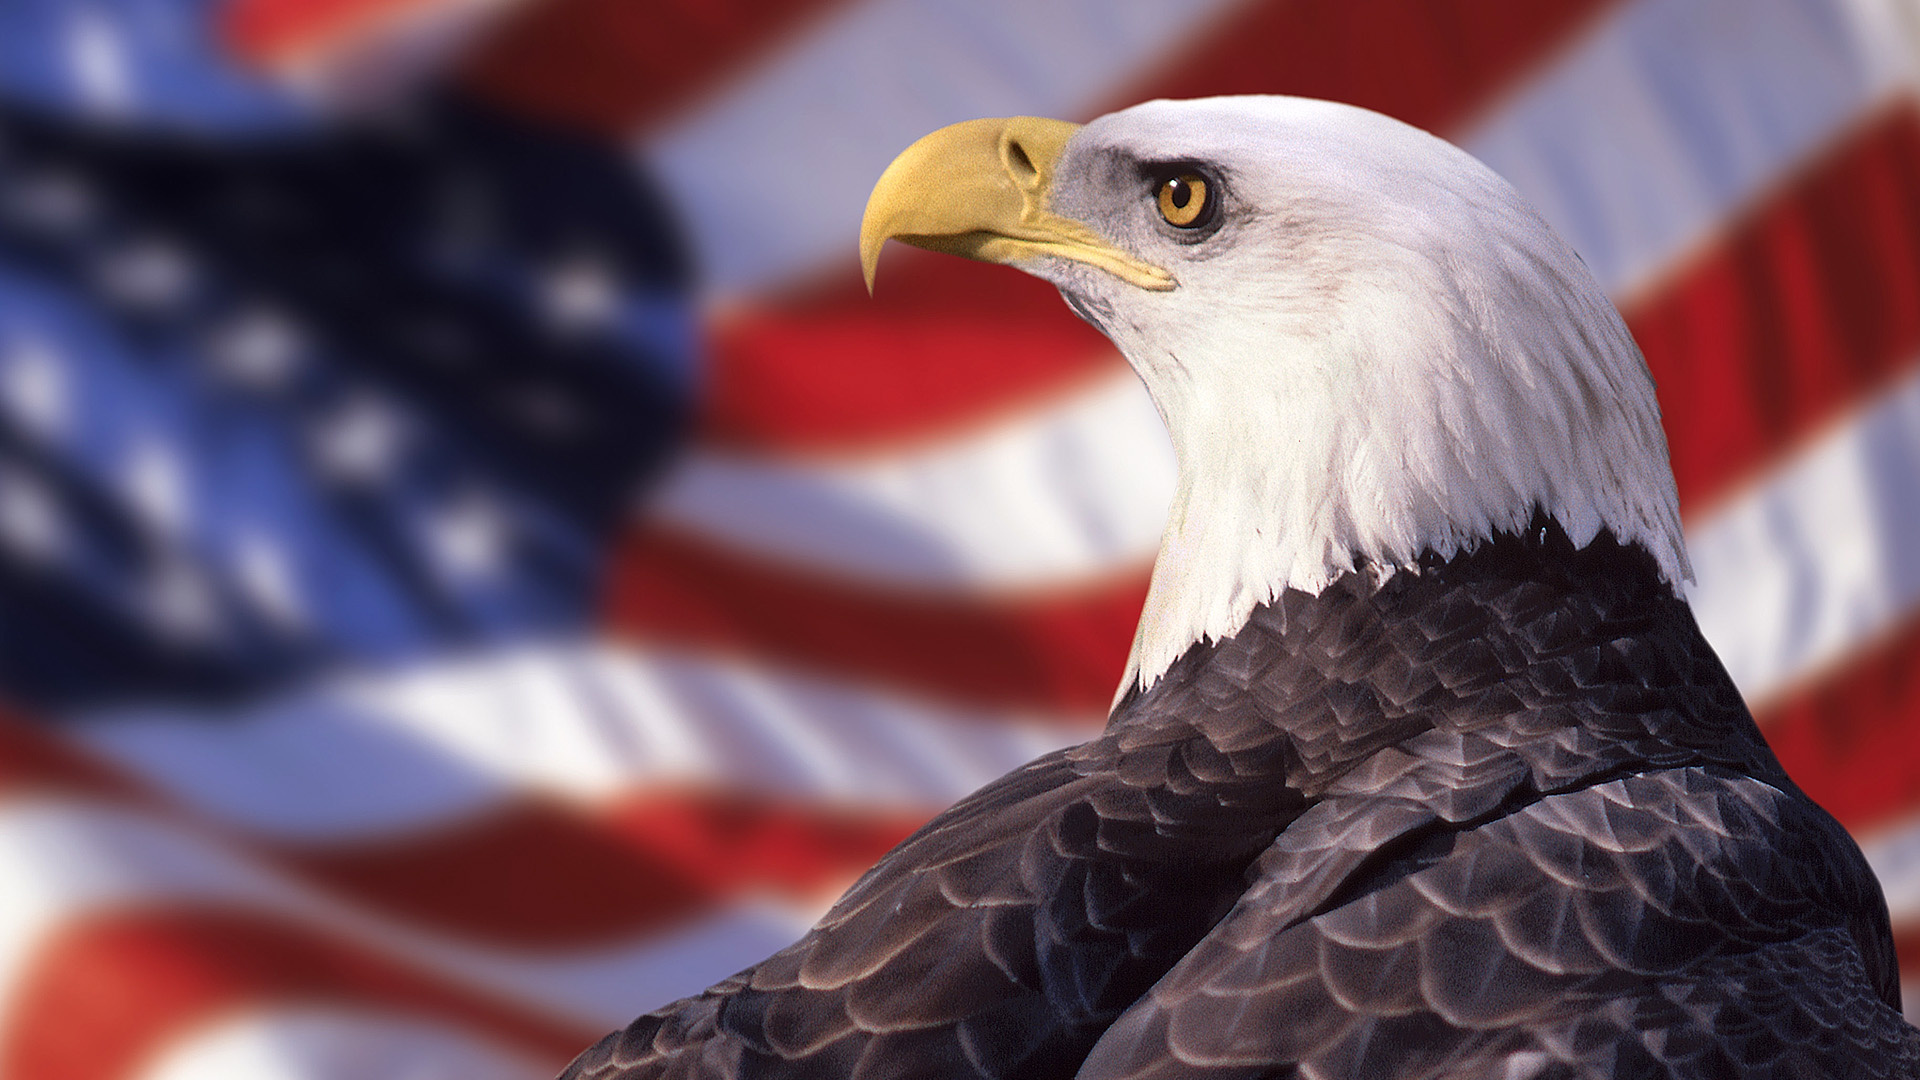 american bald eagle wallpaper 014